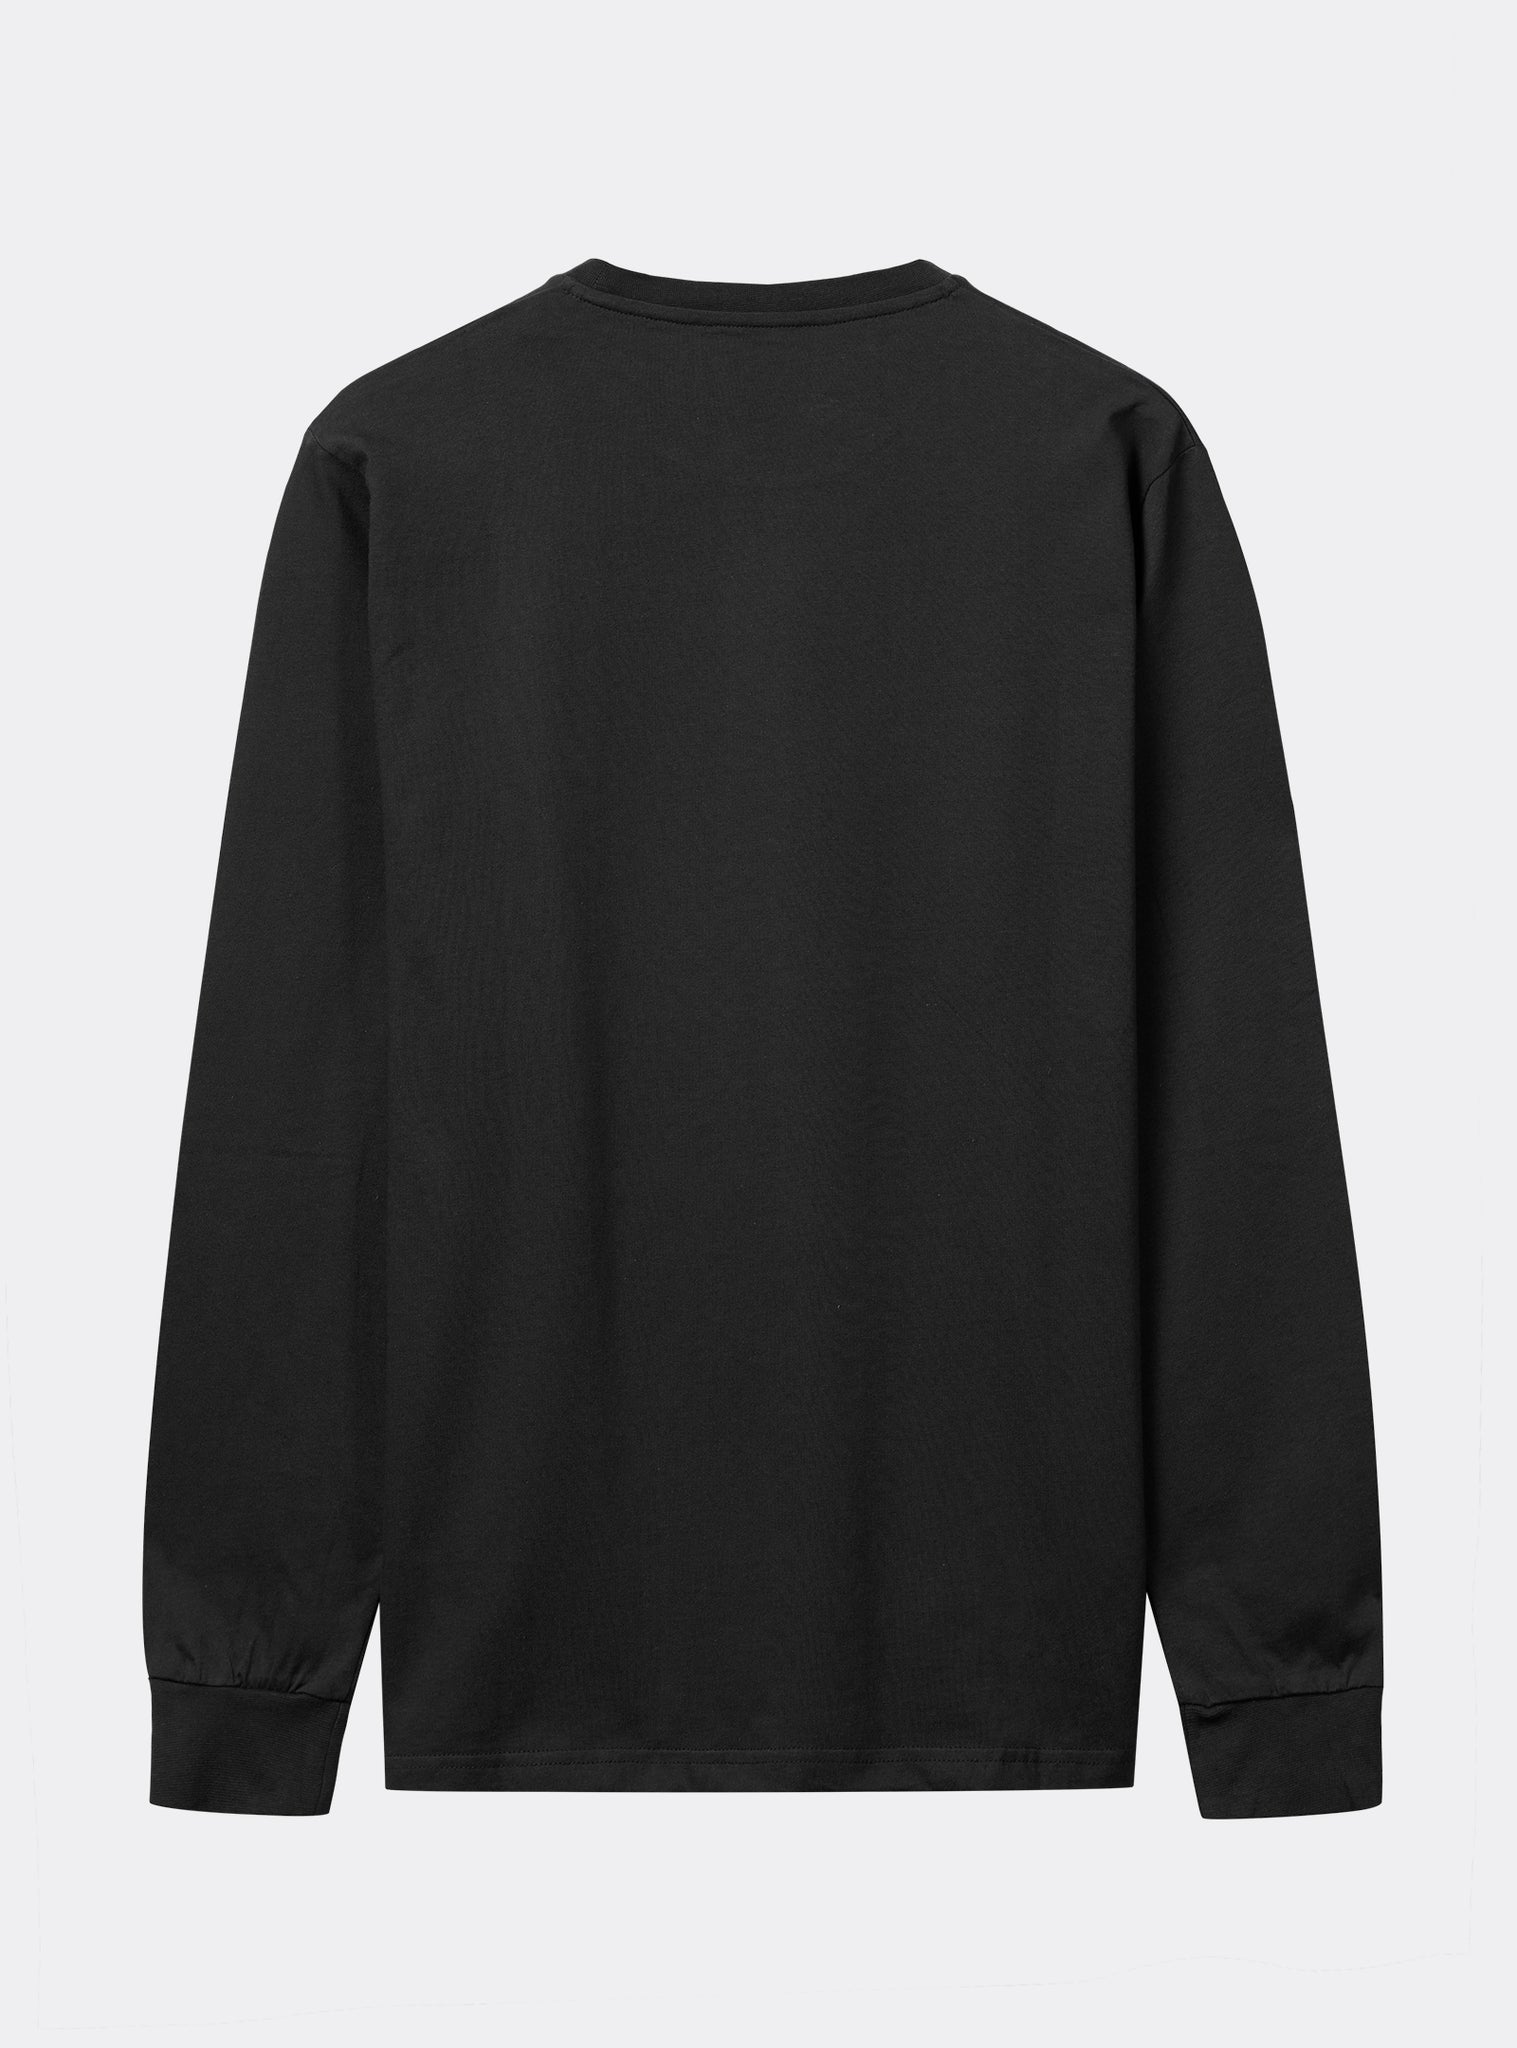 Techno 2 Tee L/s Black